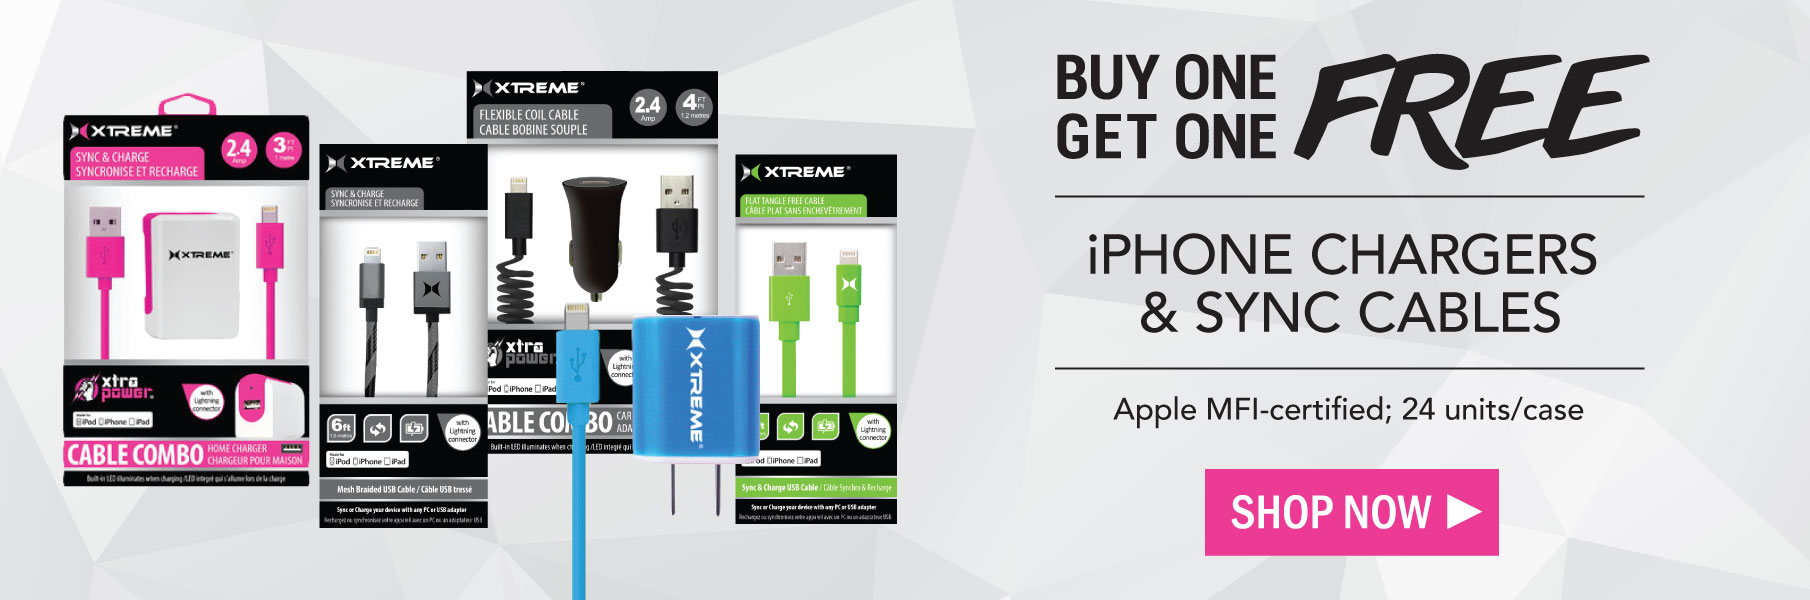 BOGO iPhone Cables